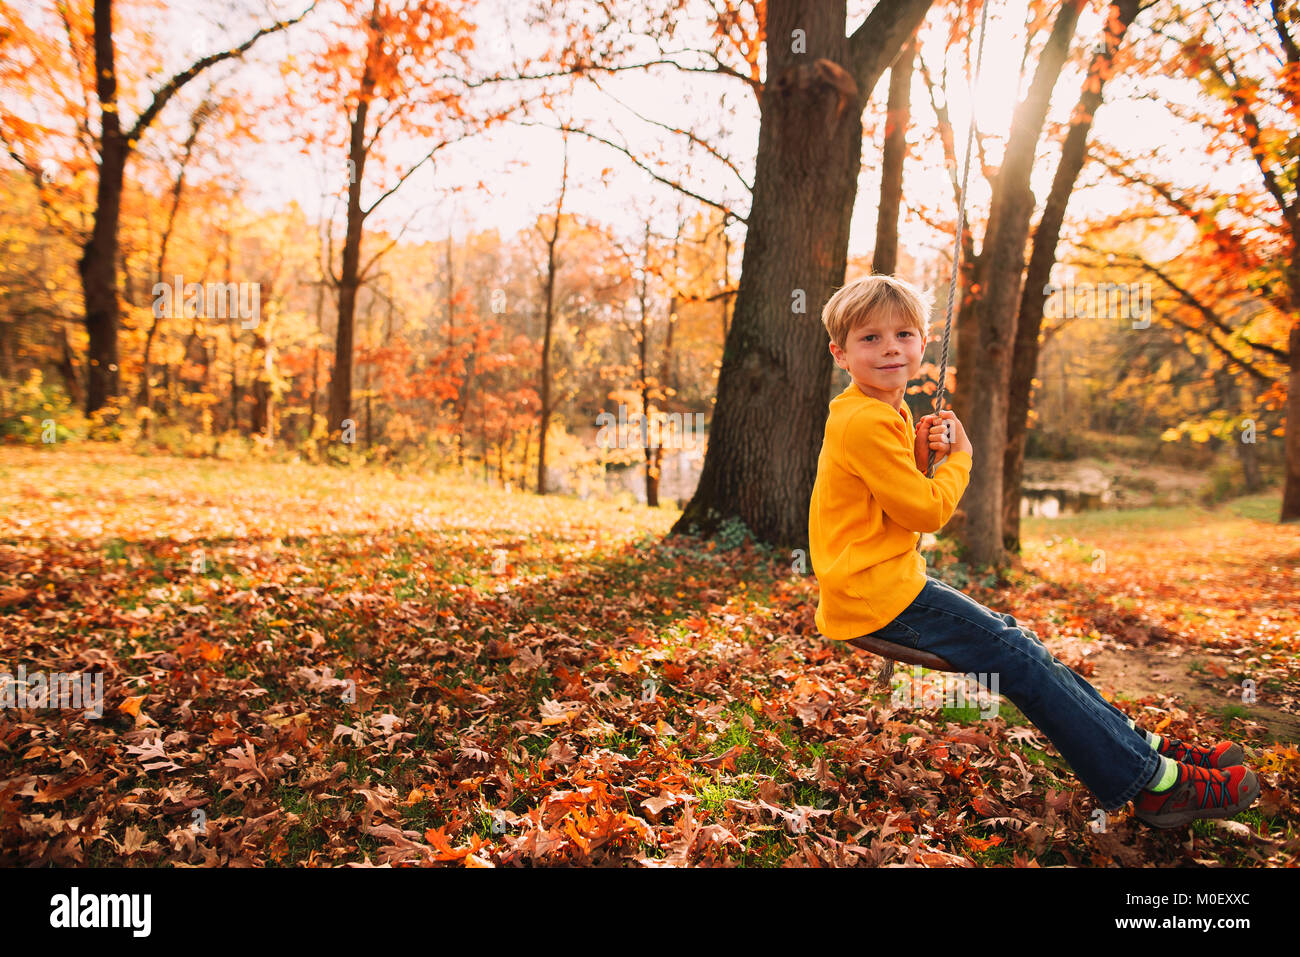 Boy sitting on a rope swing in a garden - Stock Image